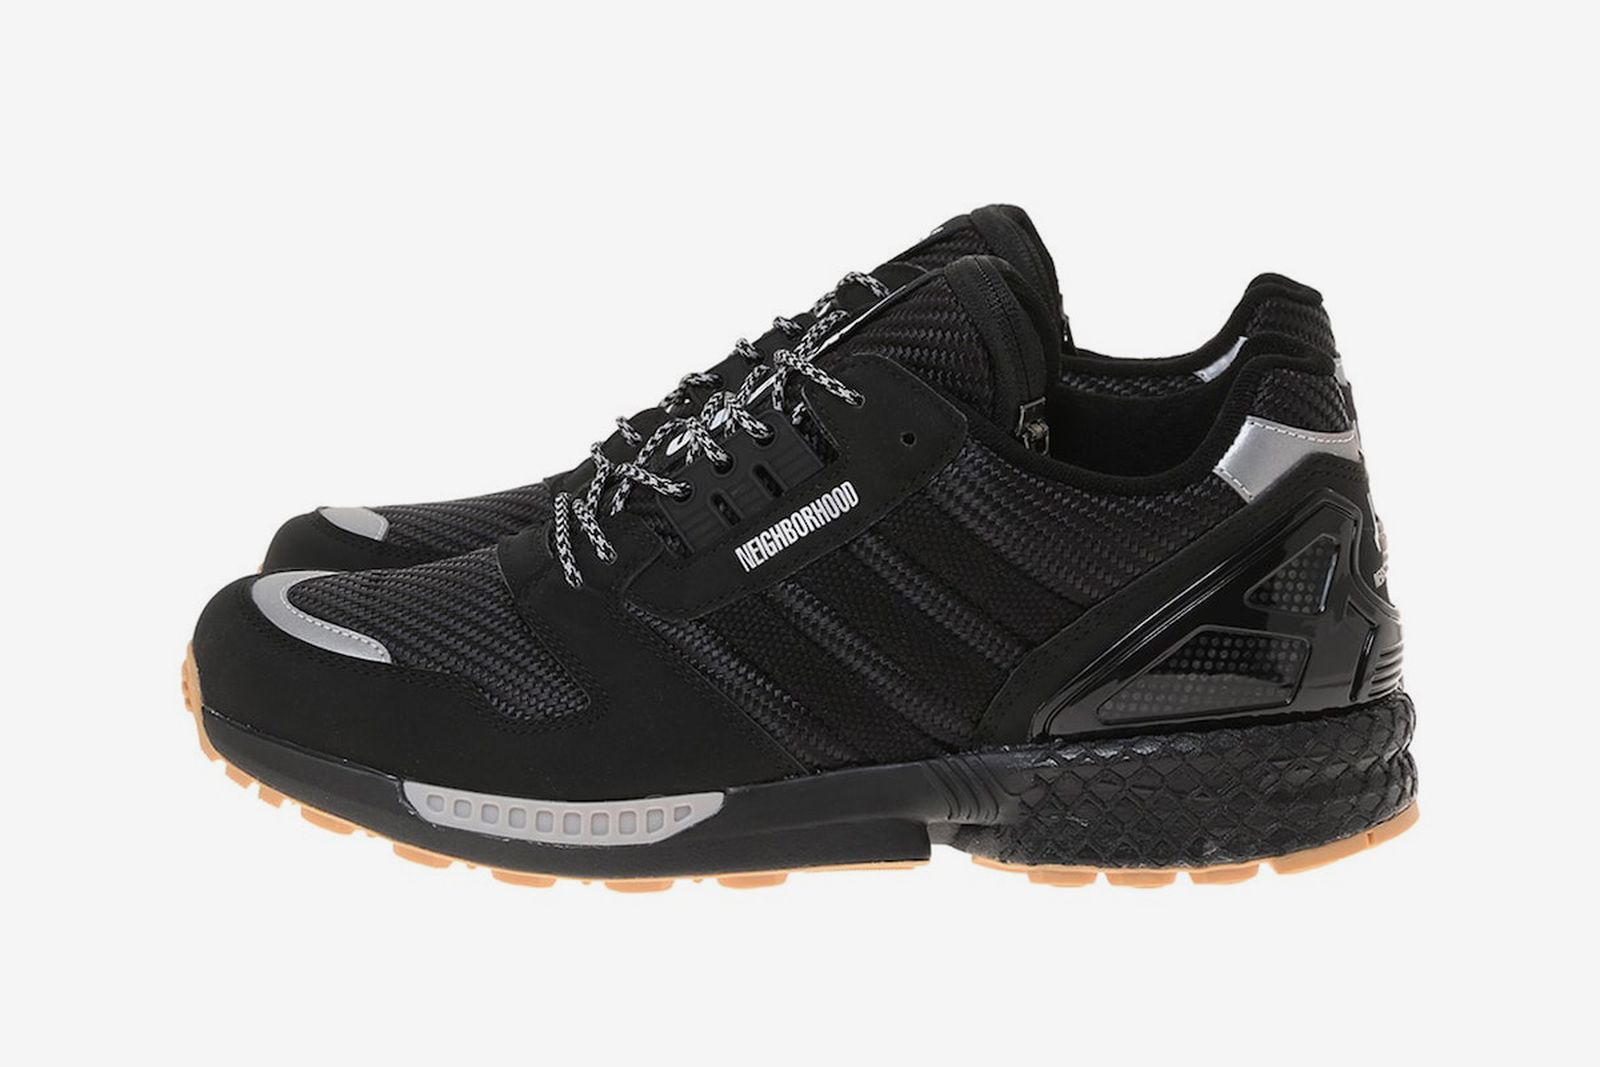 neighborhood-undefeated-adidas-zx-collaboration-release-date-price-05